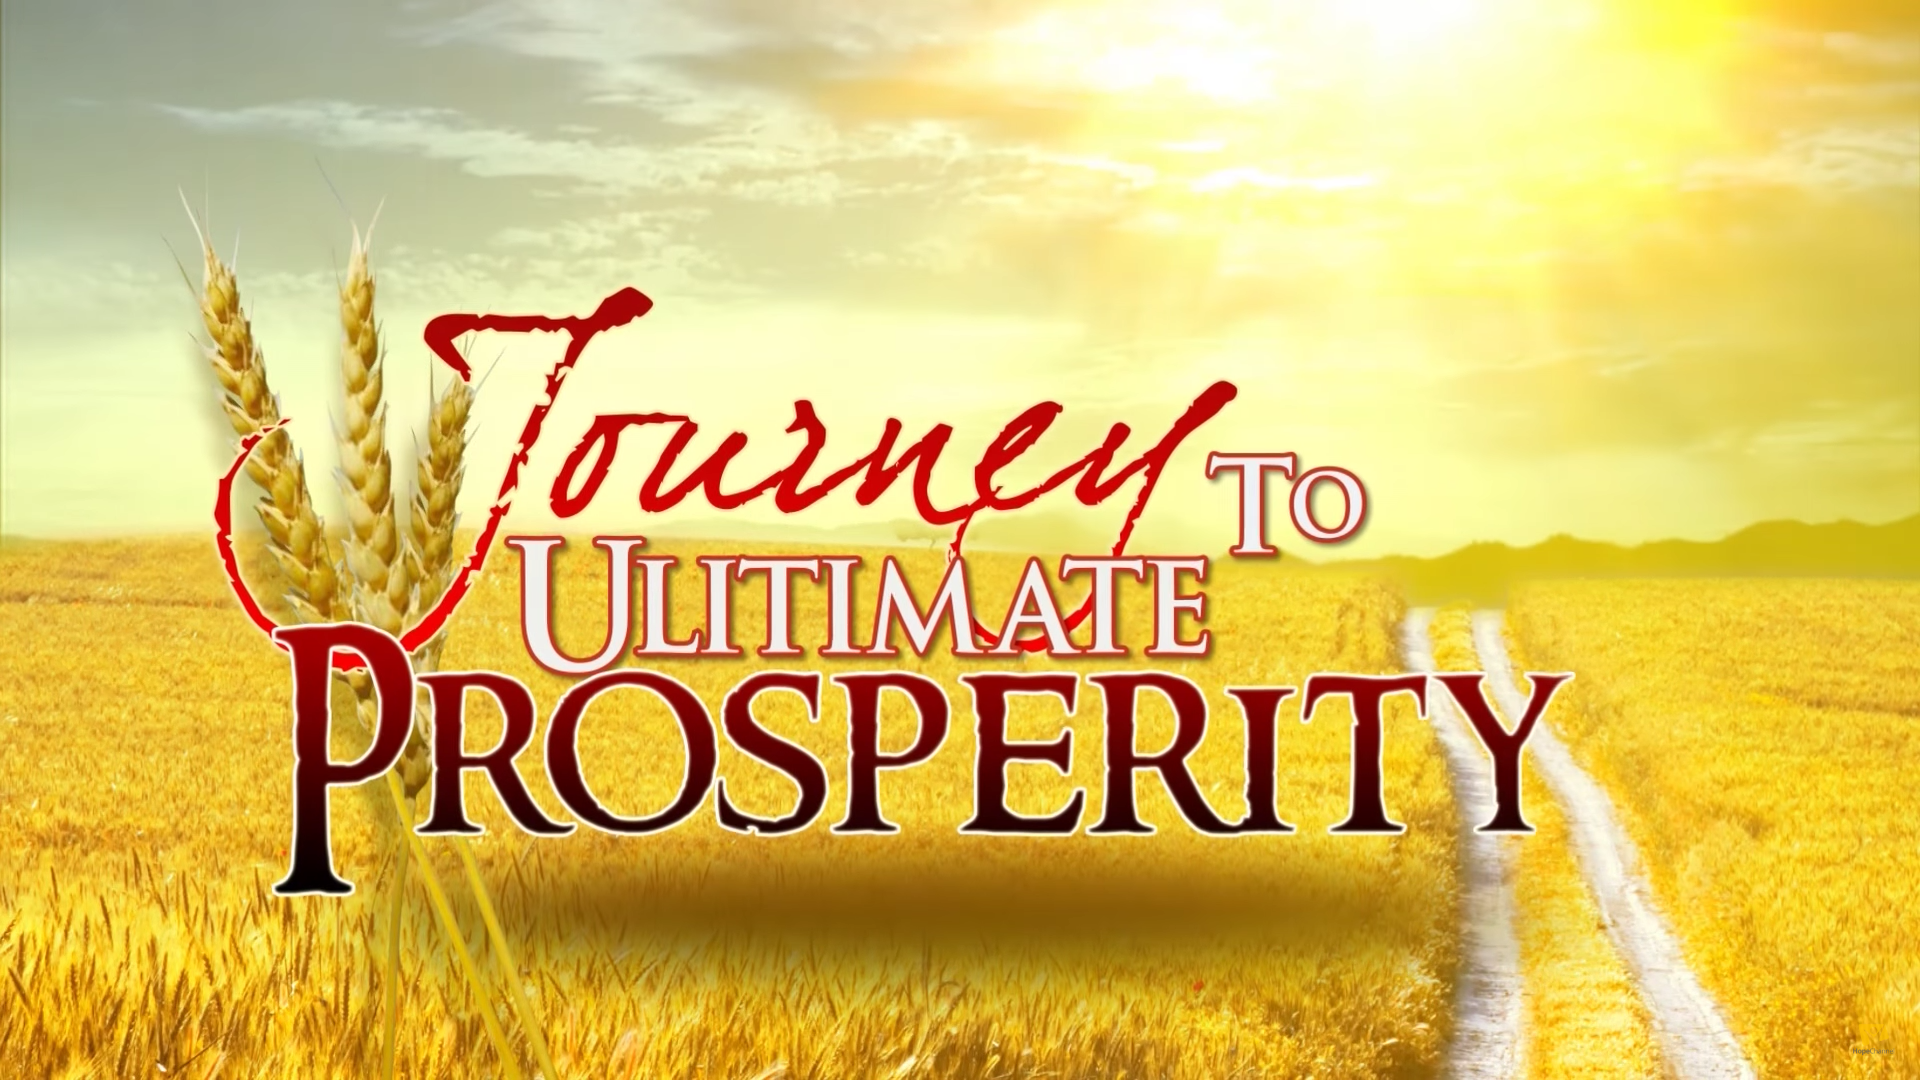 Journey To Ultimate Prosperity